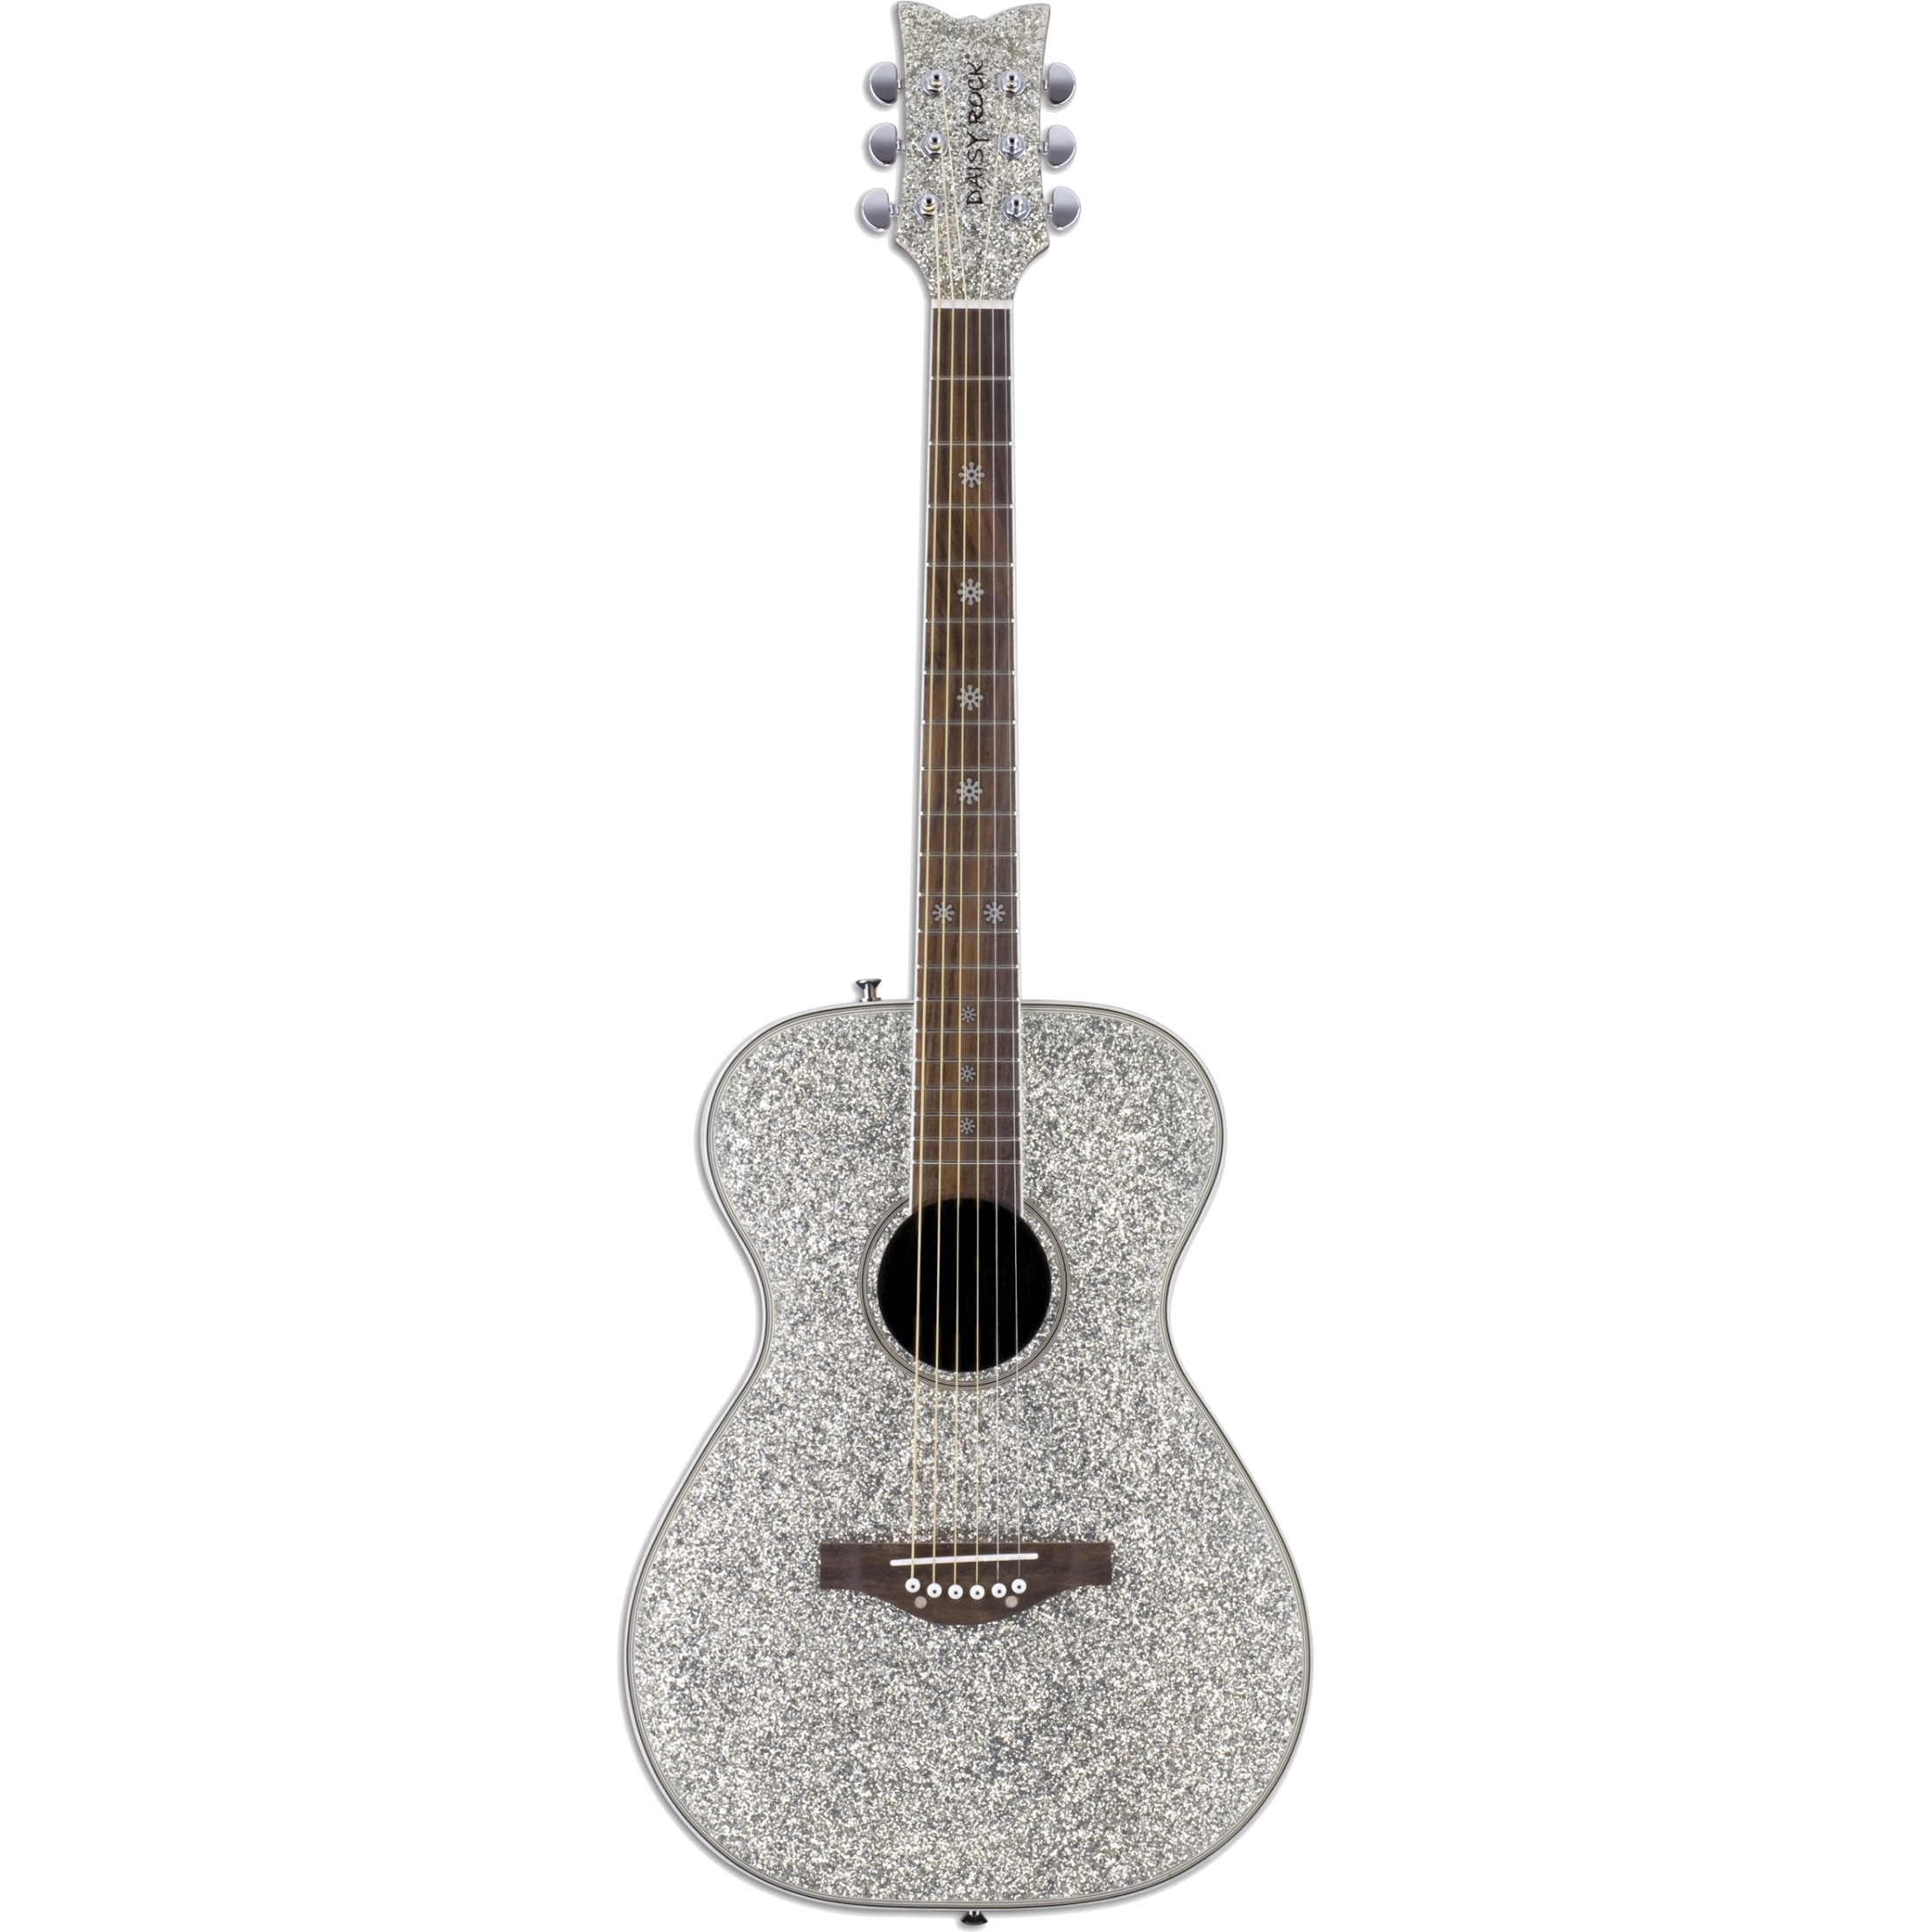 Daisy Rock Pixie Acoustic Silver Sparkle steel string guitar